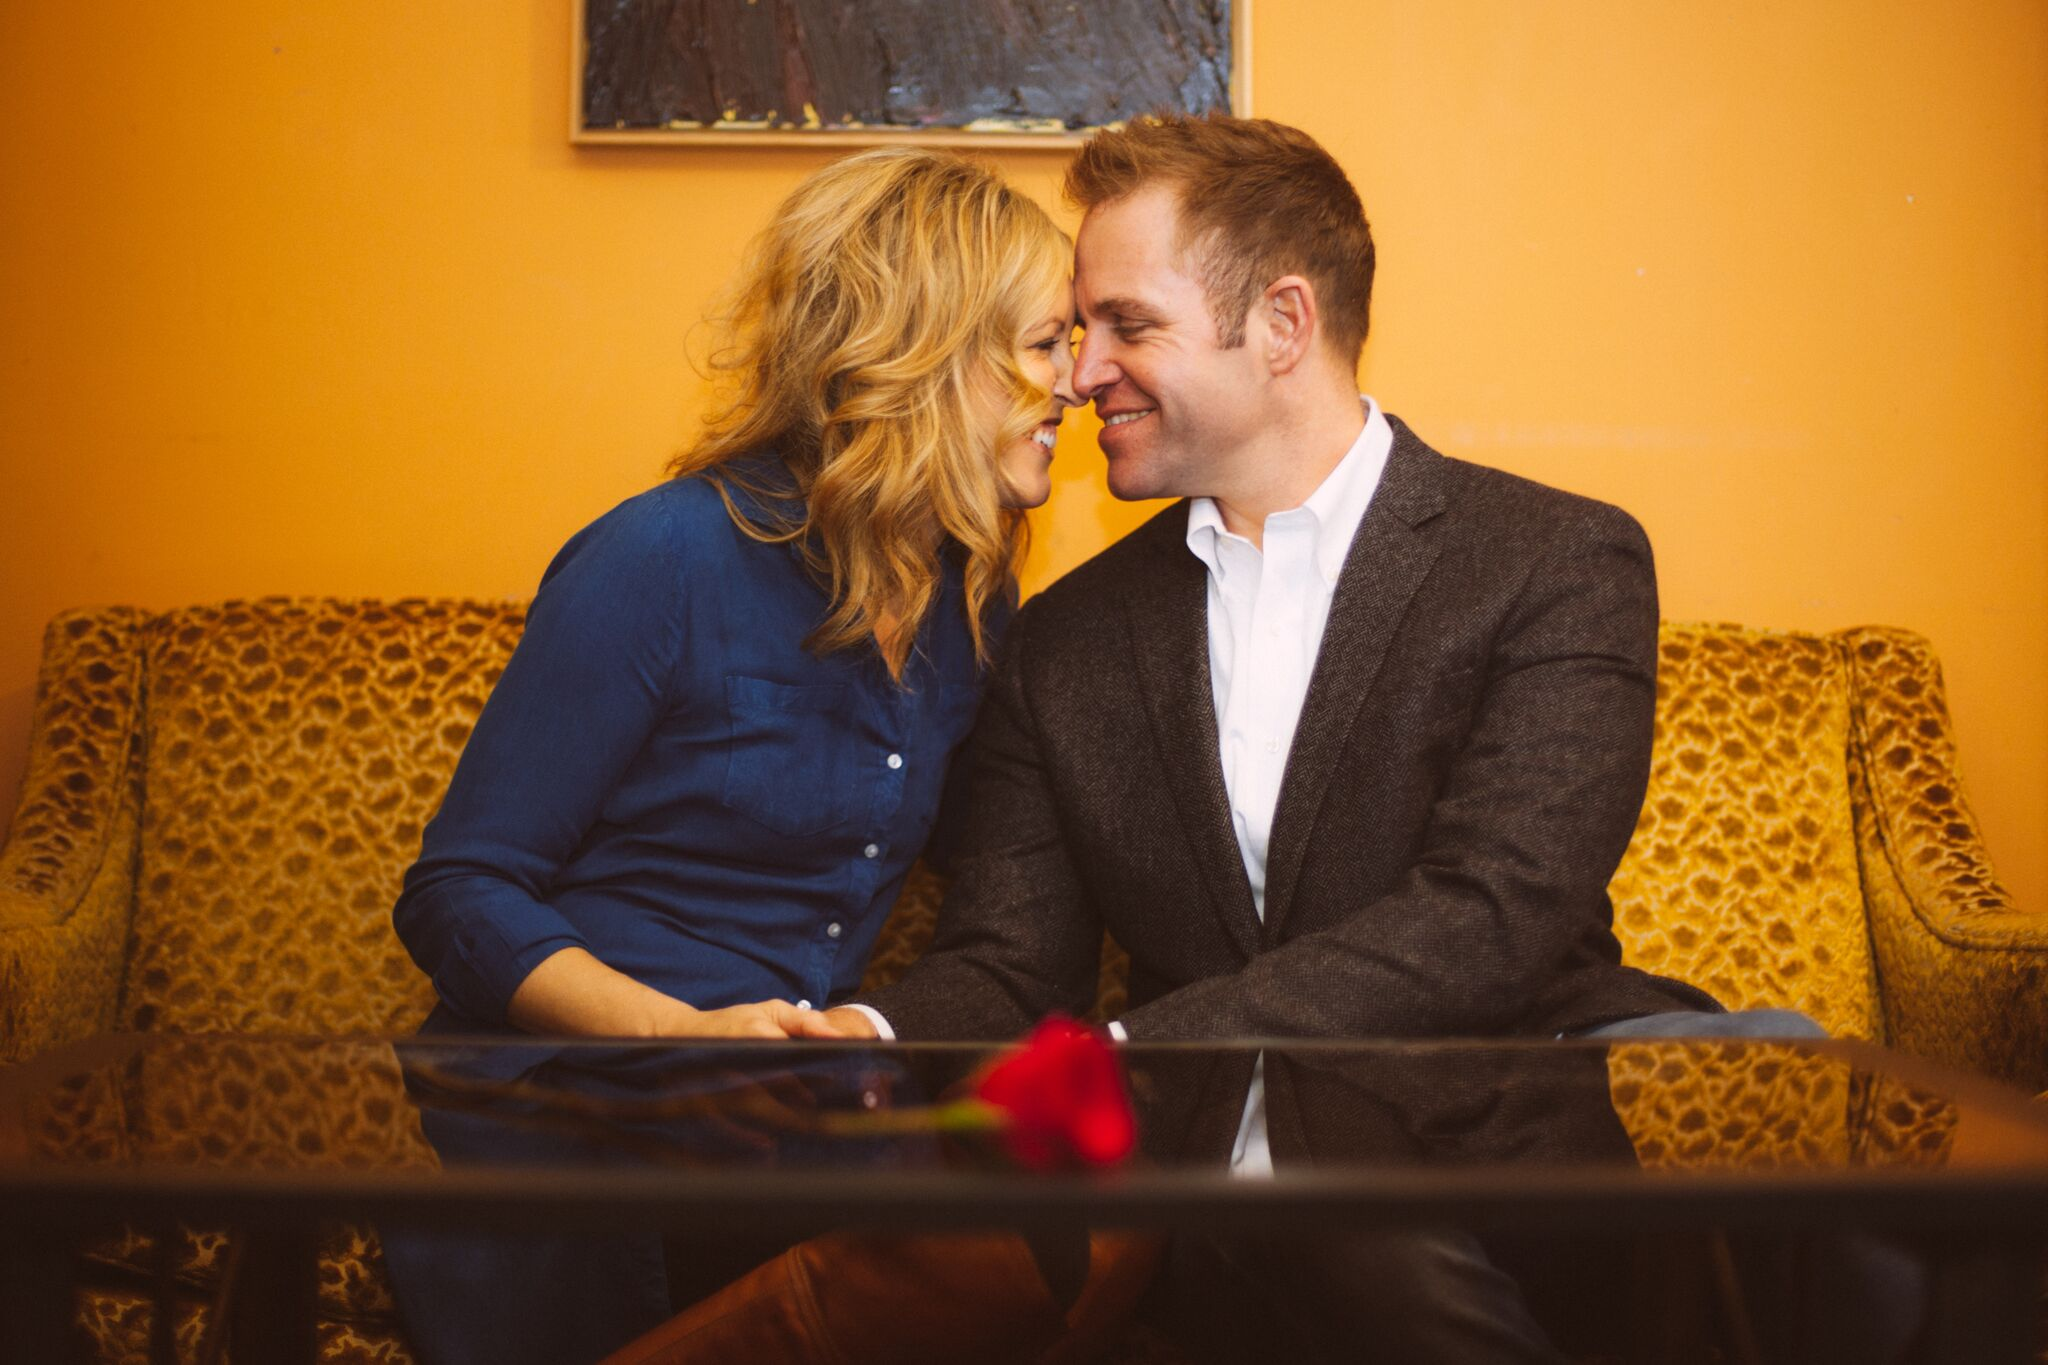 Dr Erica Peabody - Engagement Photos - Chiropractor Fenton Michigan